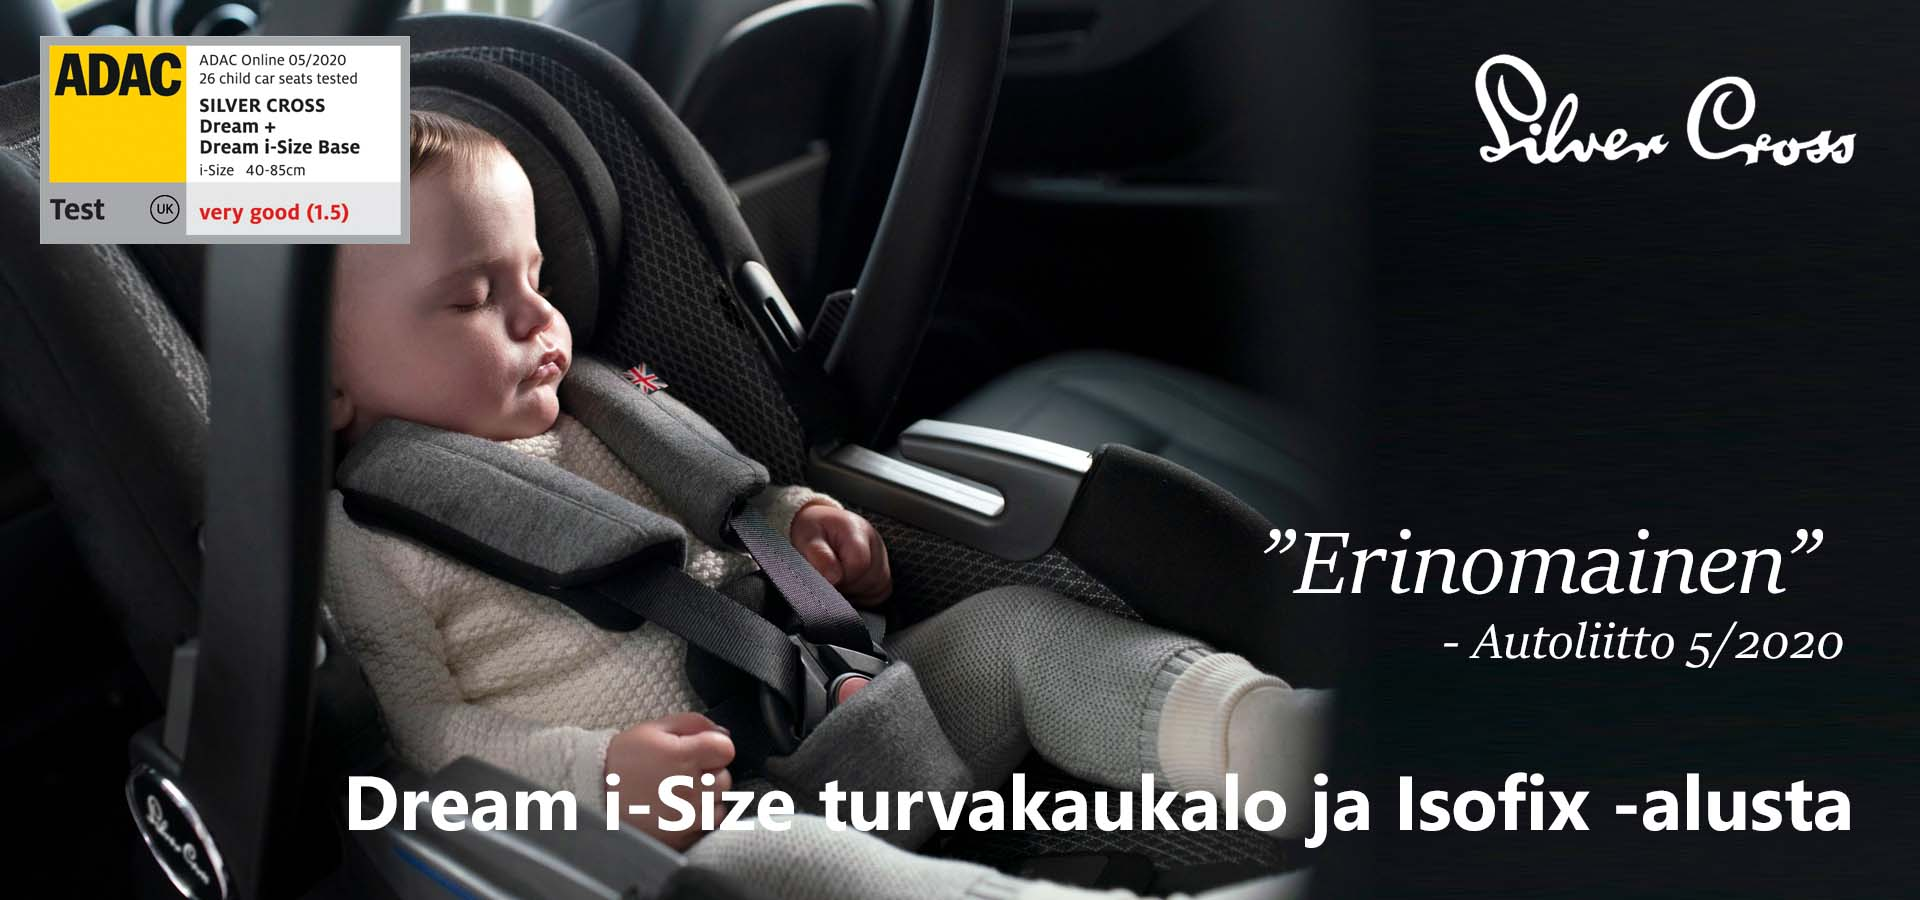 Silver Cross Dream + isofix alusta - Vaunu-aitta